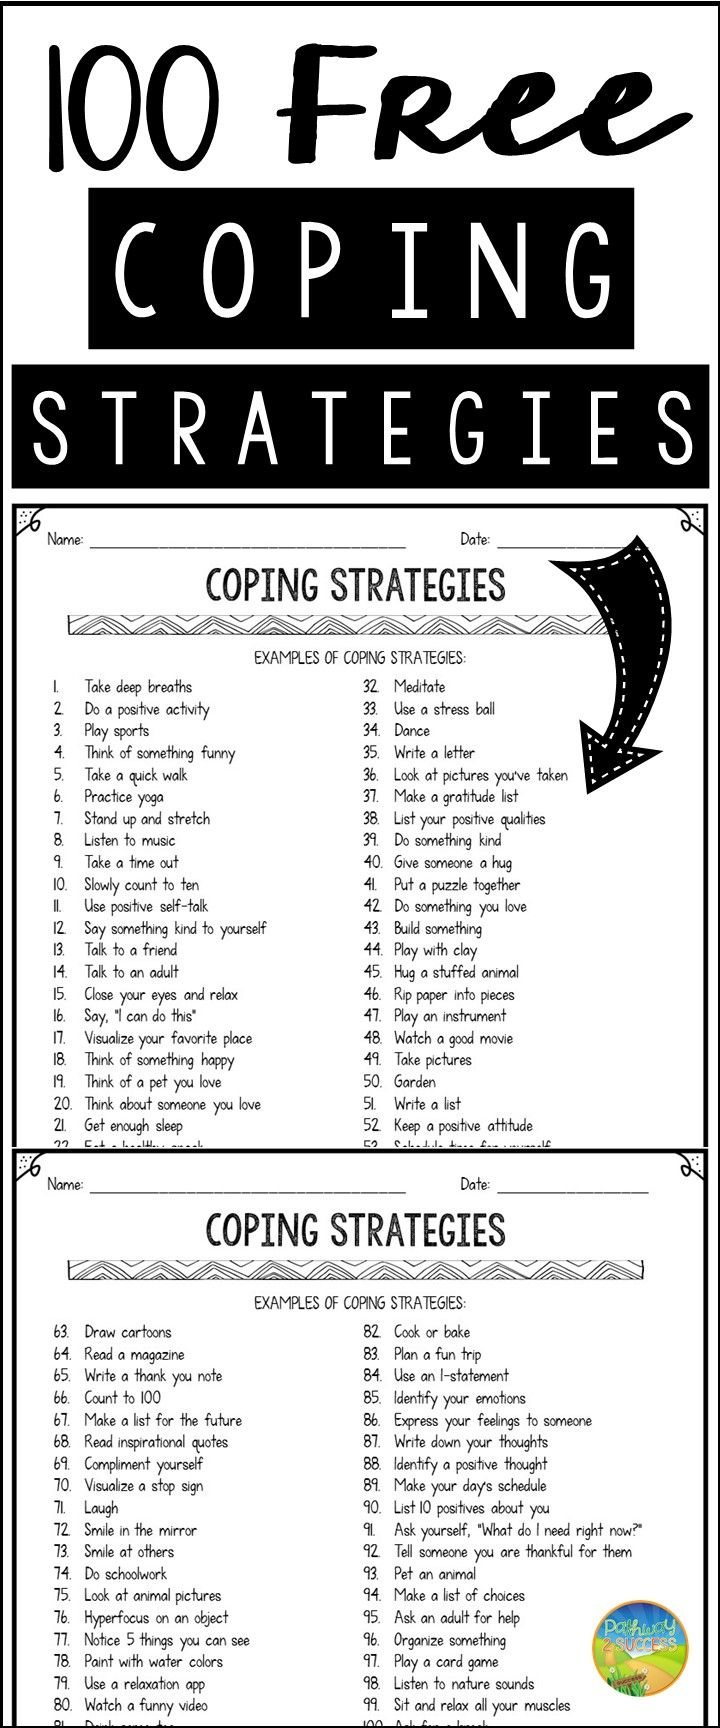 Worksheets Coping Skills Worksheets For Kids best 25 coping skills ideas on pinterest for 100 free strategies anxiety anger depression and more